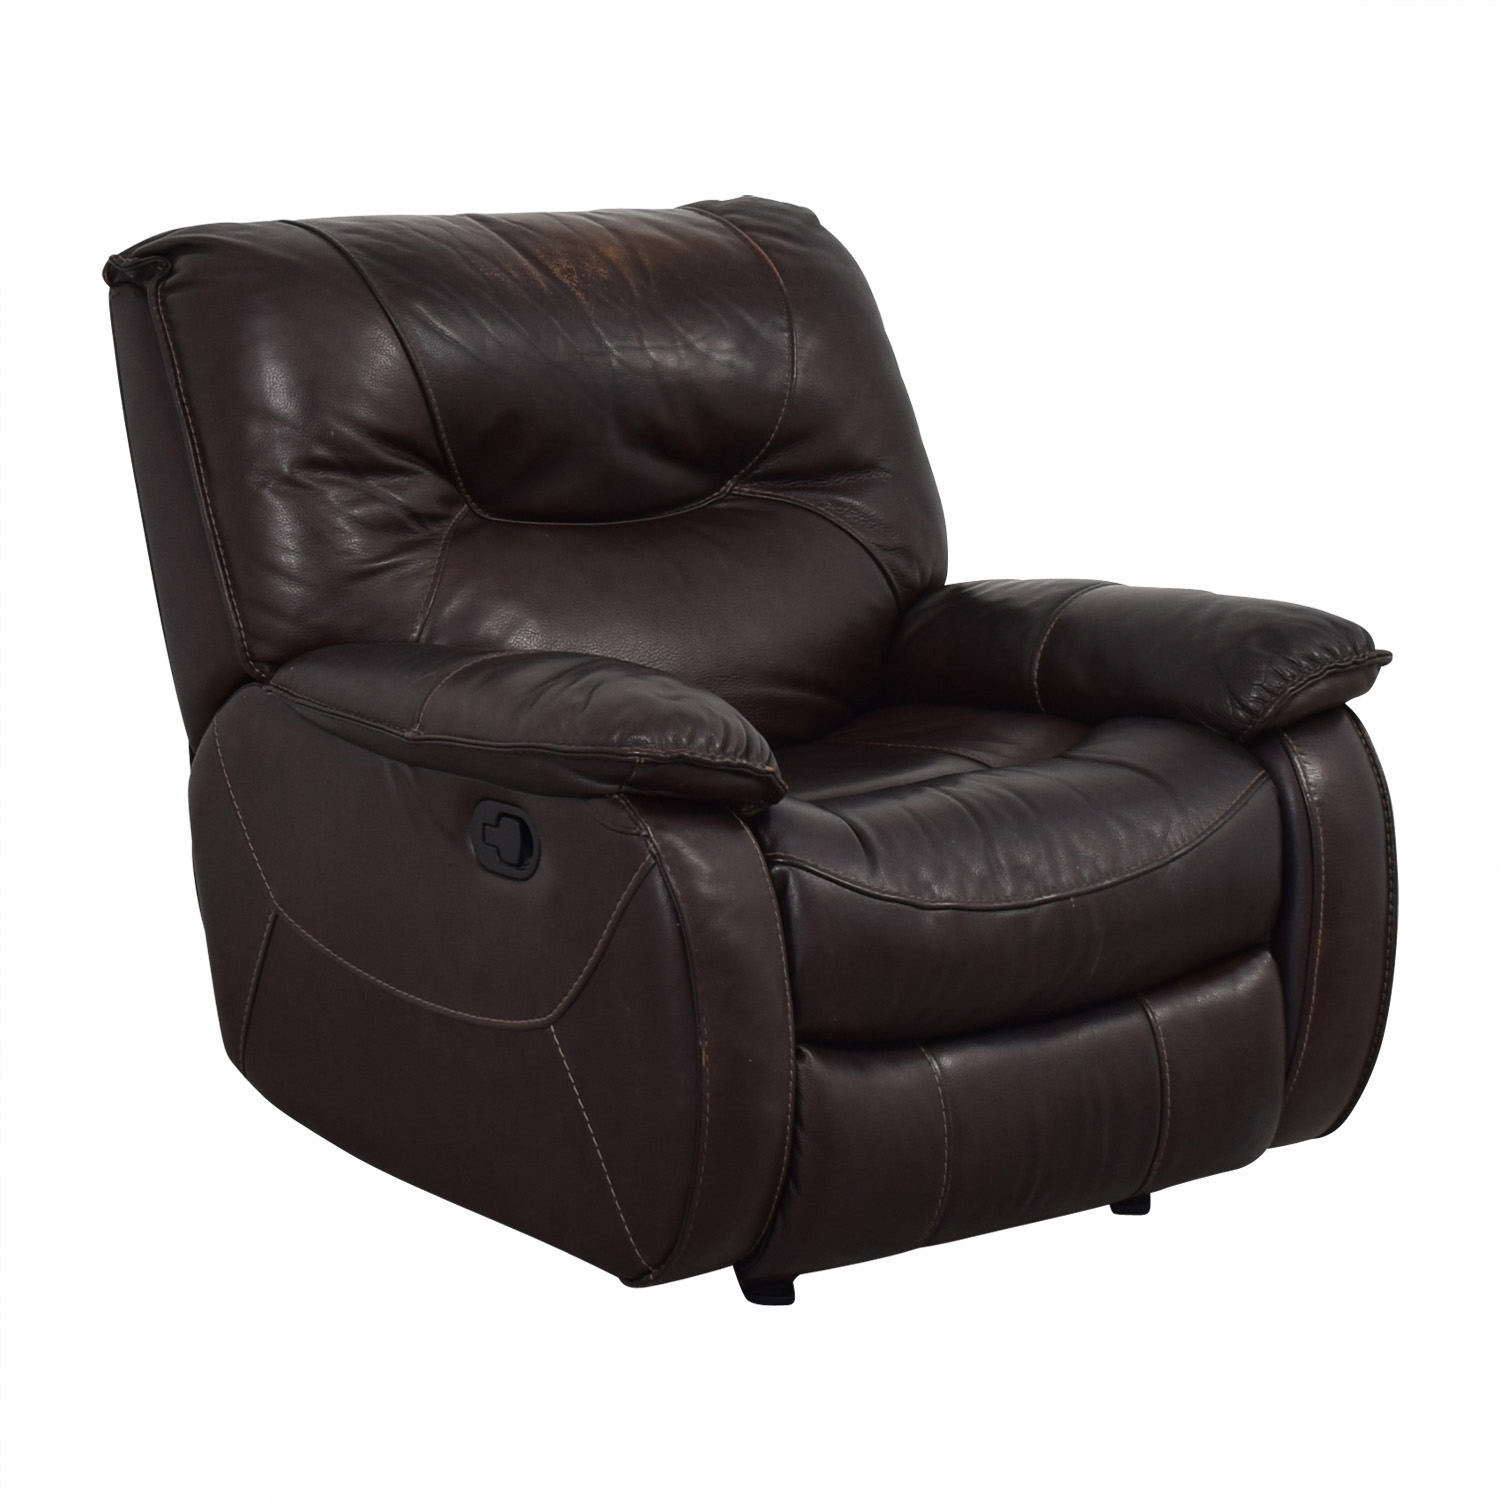 Macy's Macy's Brown Leather Recliner Chair nj